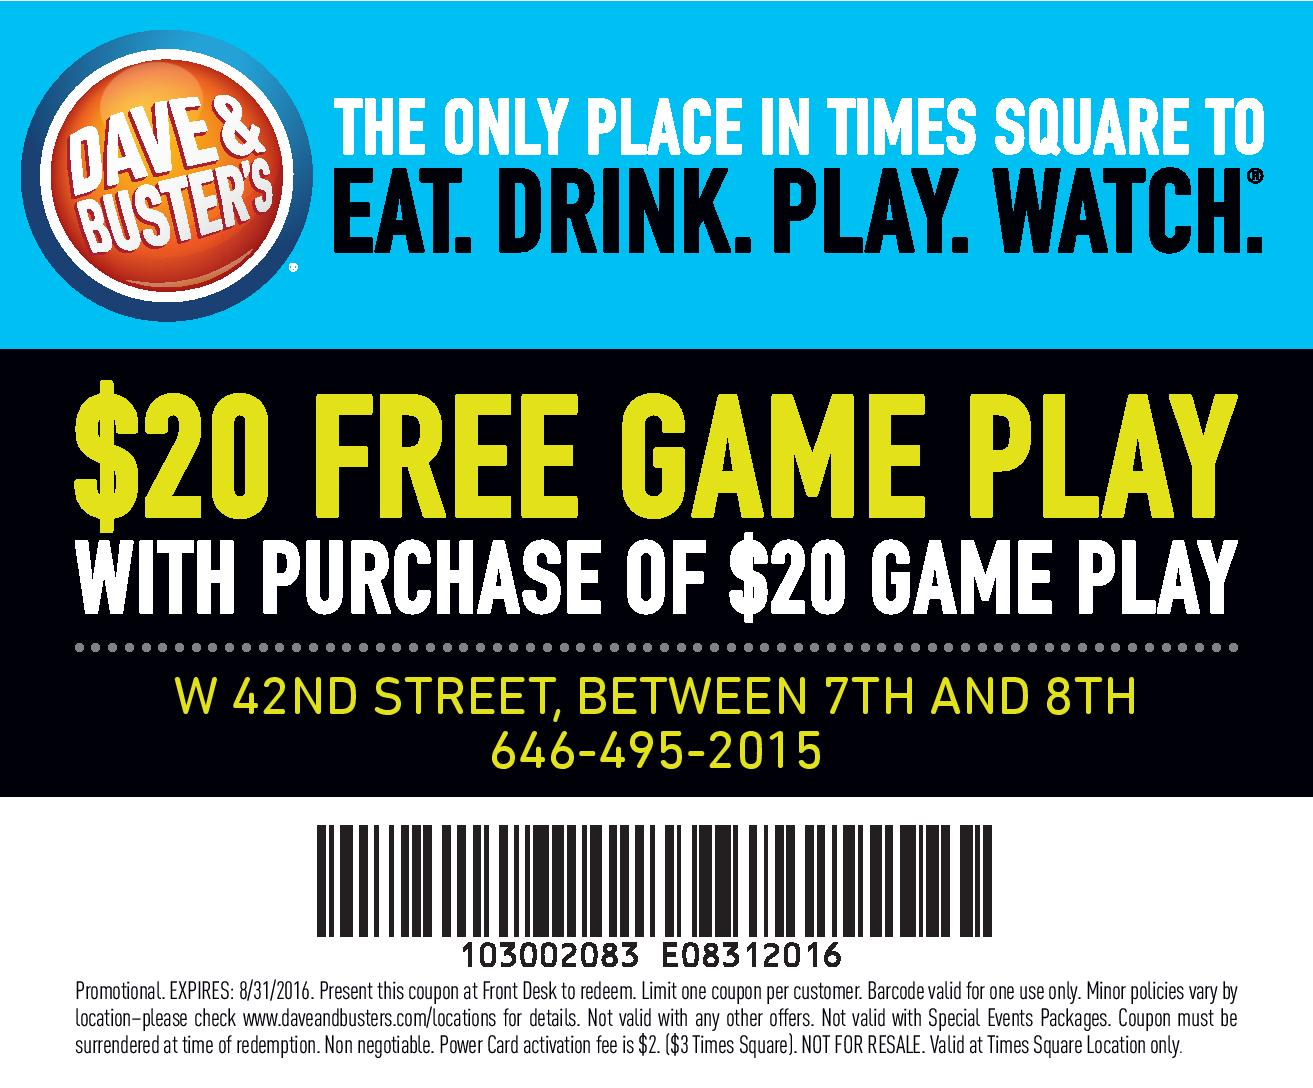 Dave and busters online printable coupons